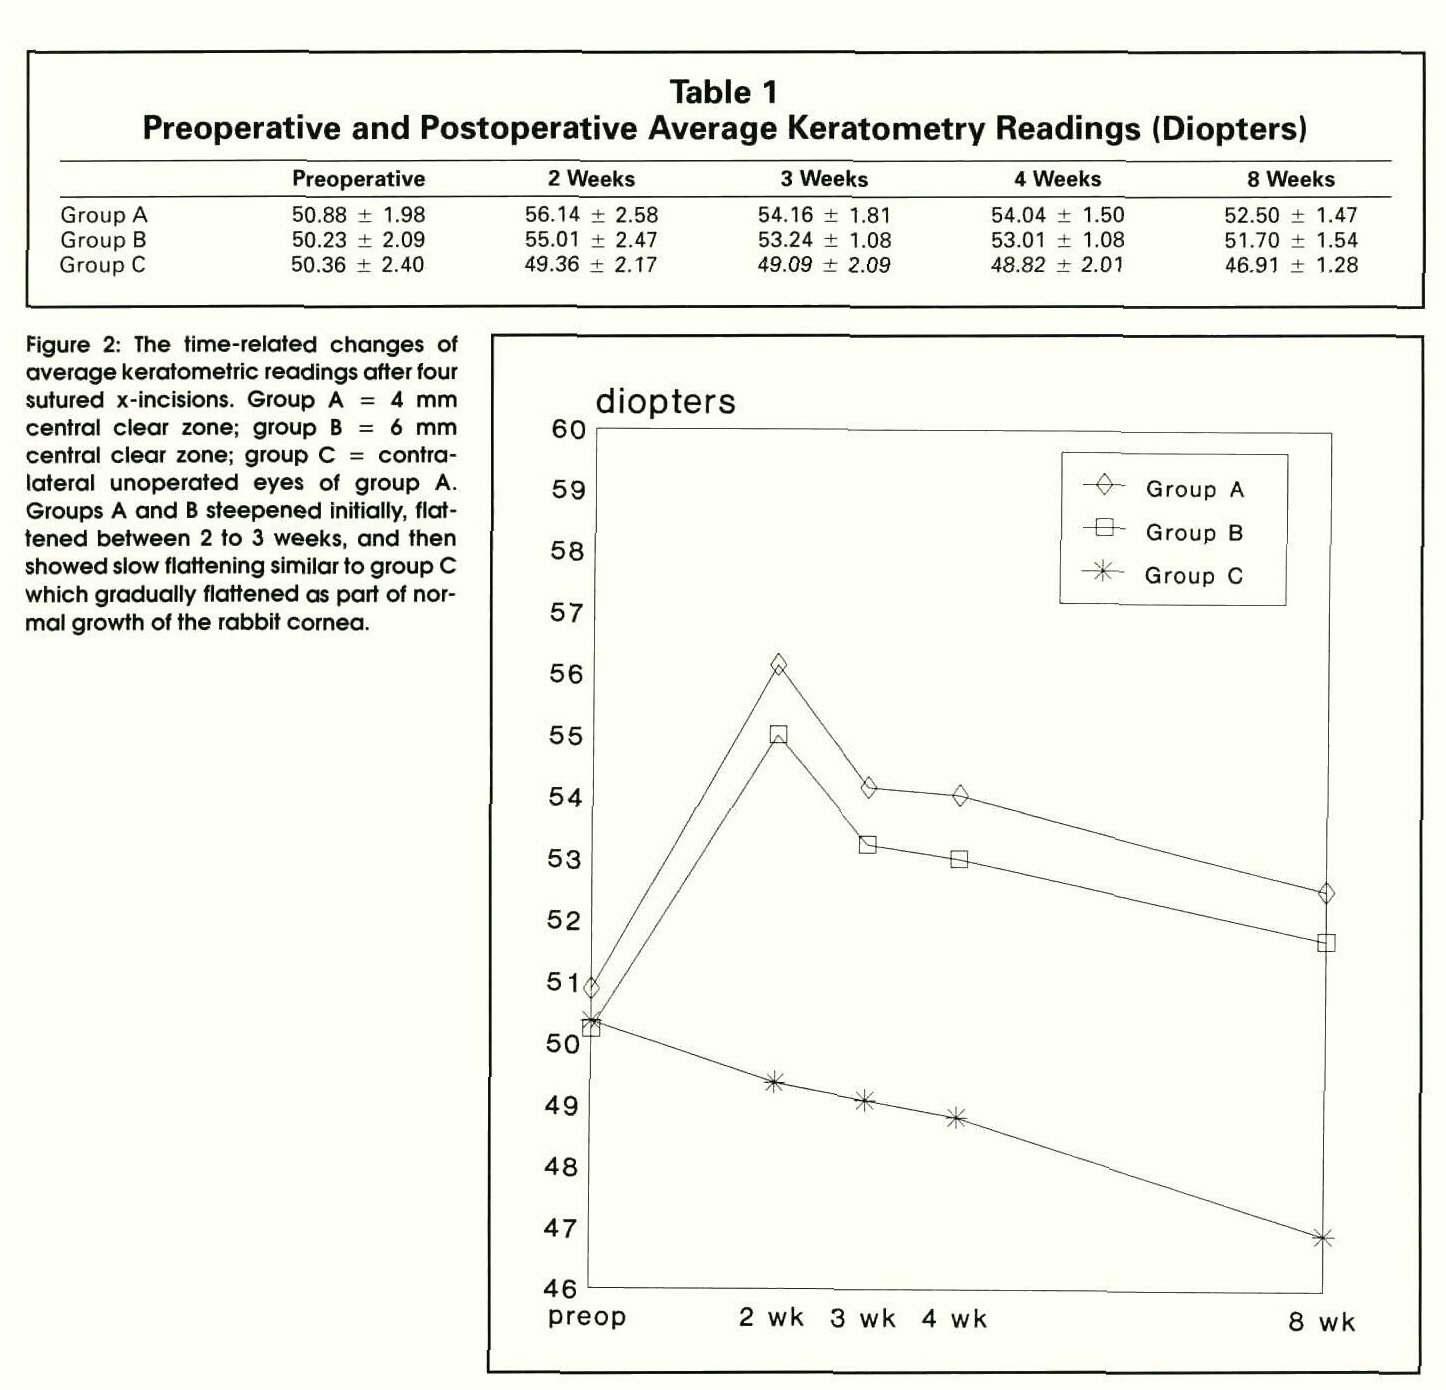 Table 1Preoperative and Postoperative Average Keratometry Readings (Diopters)Figure 2: The time-related changes of average keratometric readings after four sutured x-incisions. Group A = 4 mm central clear zone; group B = 6 mm central clear zone; group C = contralateral unoperated eyes of group A. Groups A and B steepened initially, flattened between 2 to 3 weeks, and then showed slow flattening similar to group C which gradually flattened as part of normal growth of the rabbit cornea.